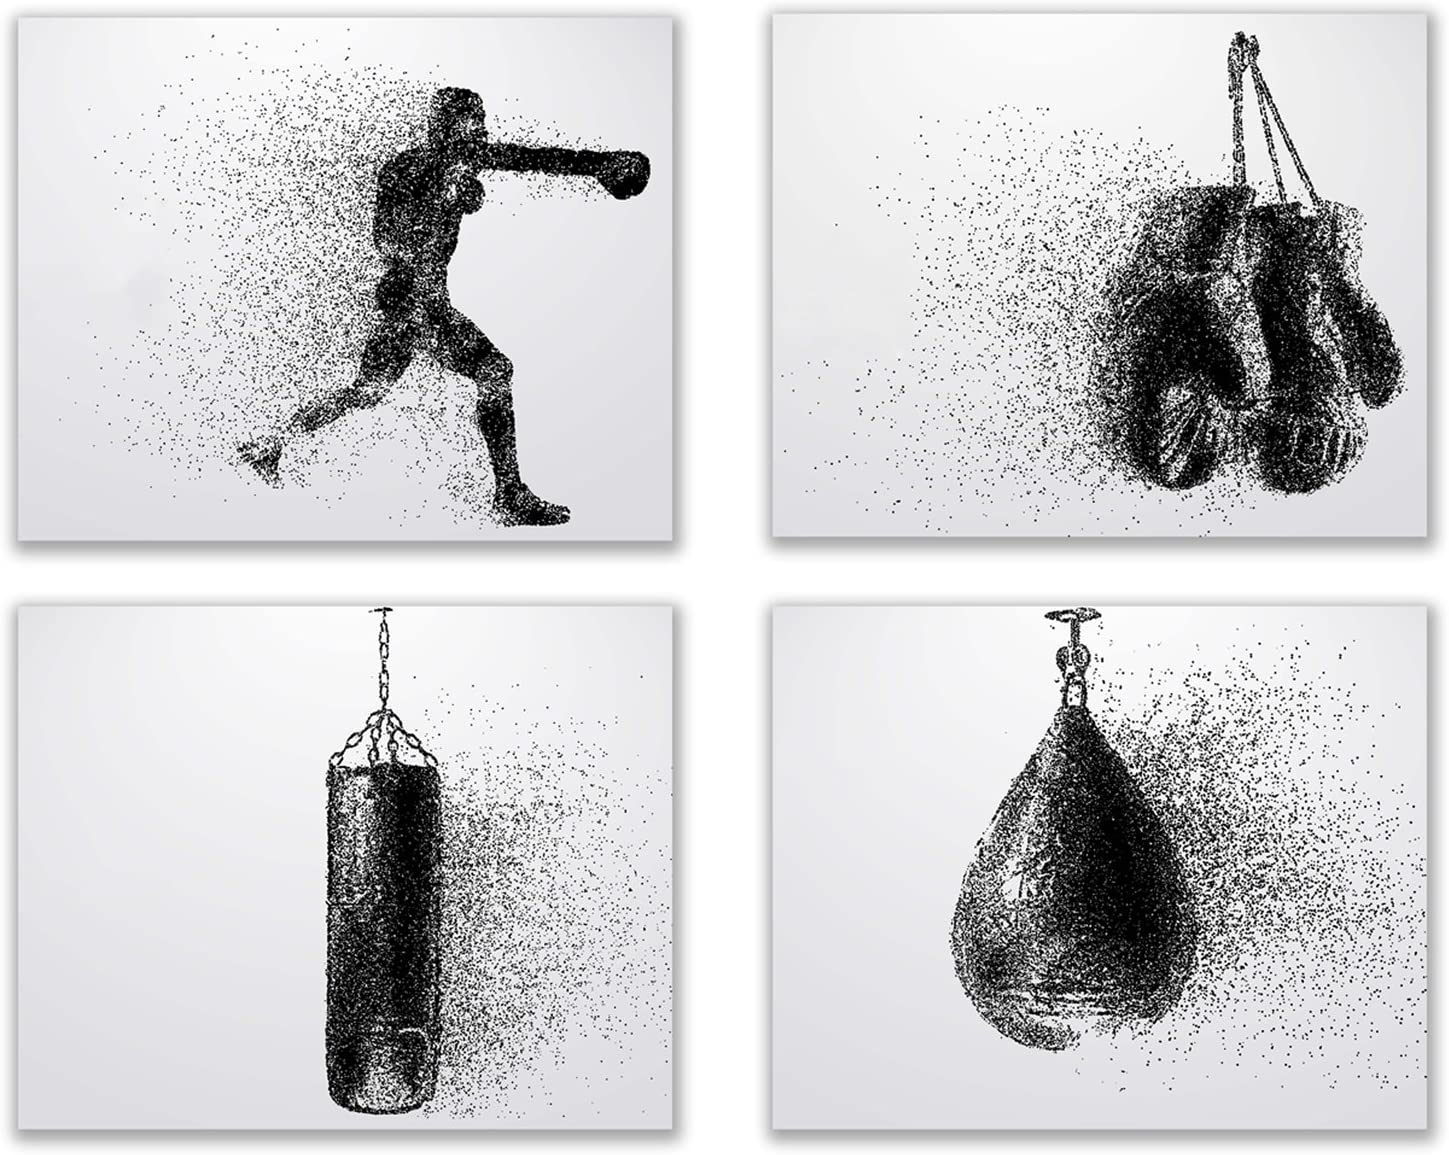 Boxing Wall Art Prints - Silhouette – Set of 4 (8x10) Poster Photos - Bedroom - Man Cave